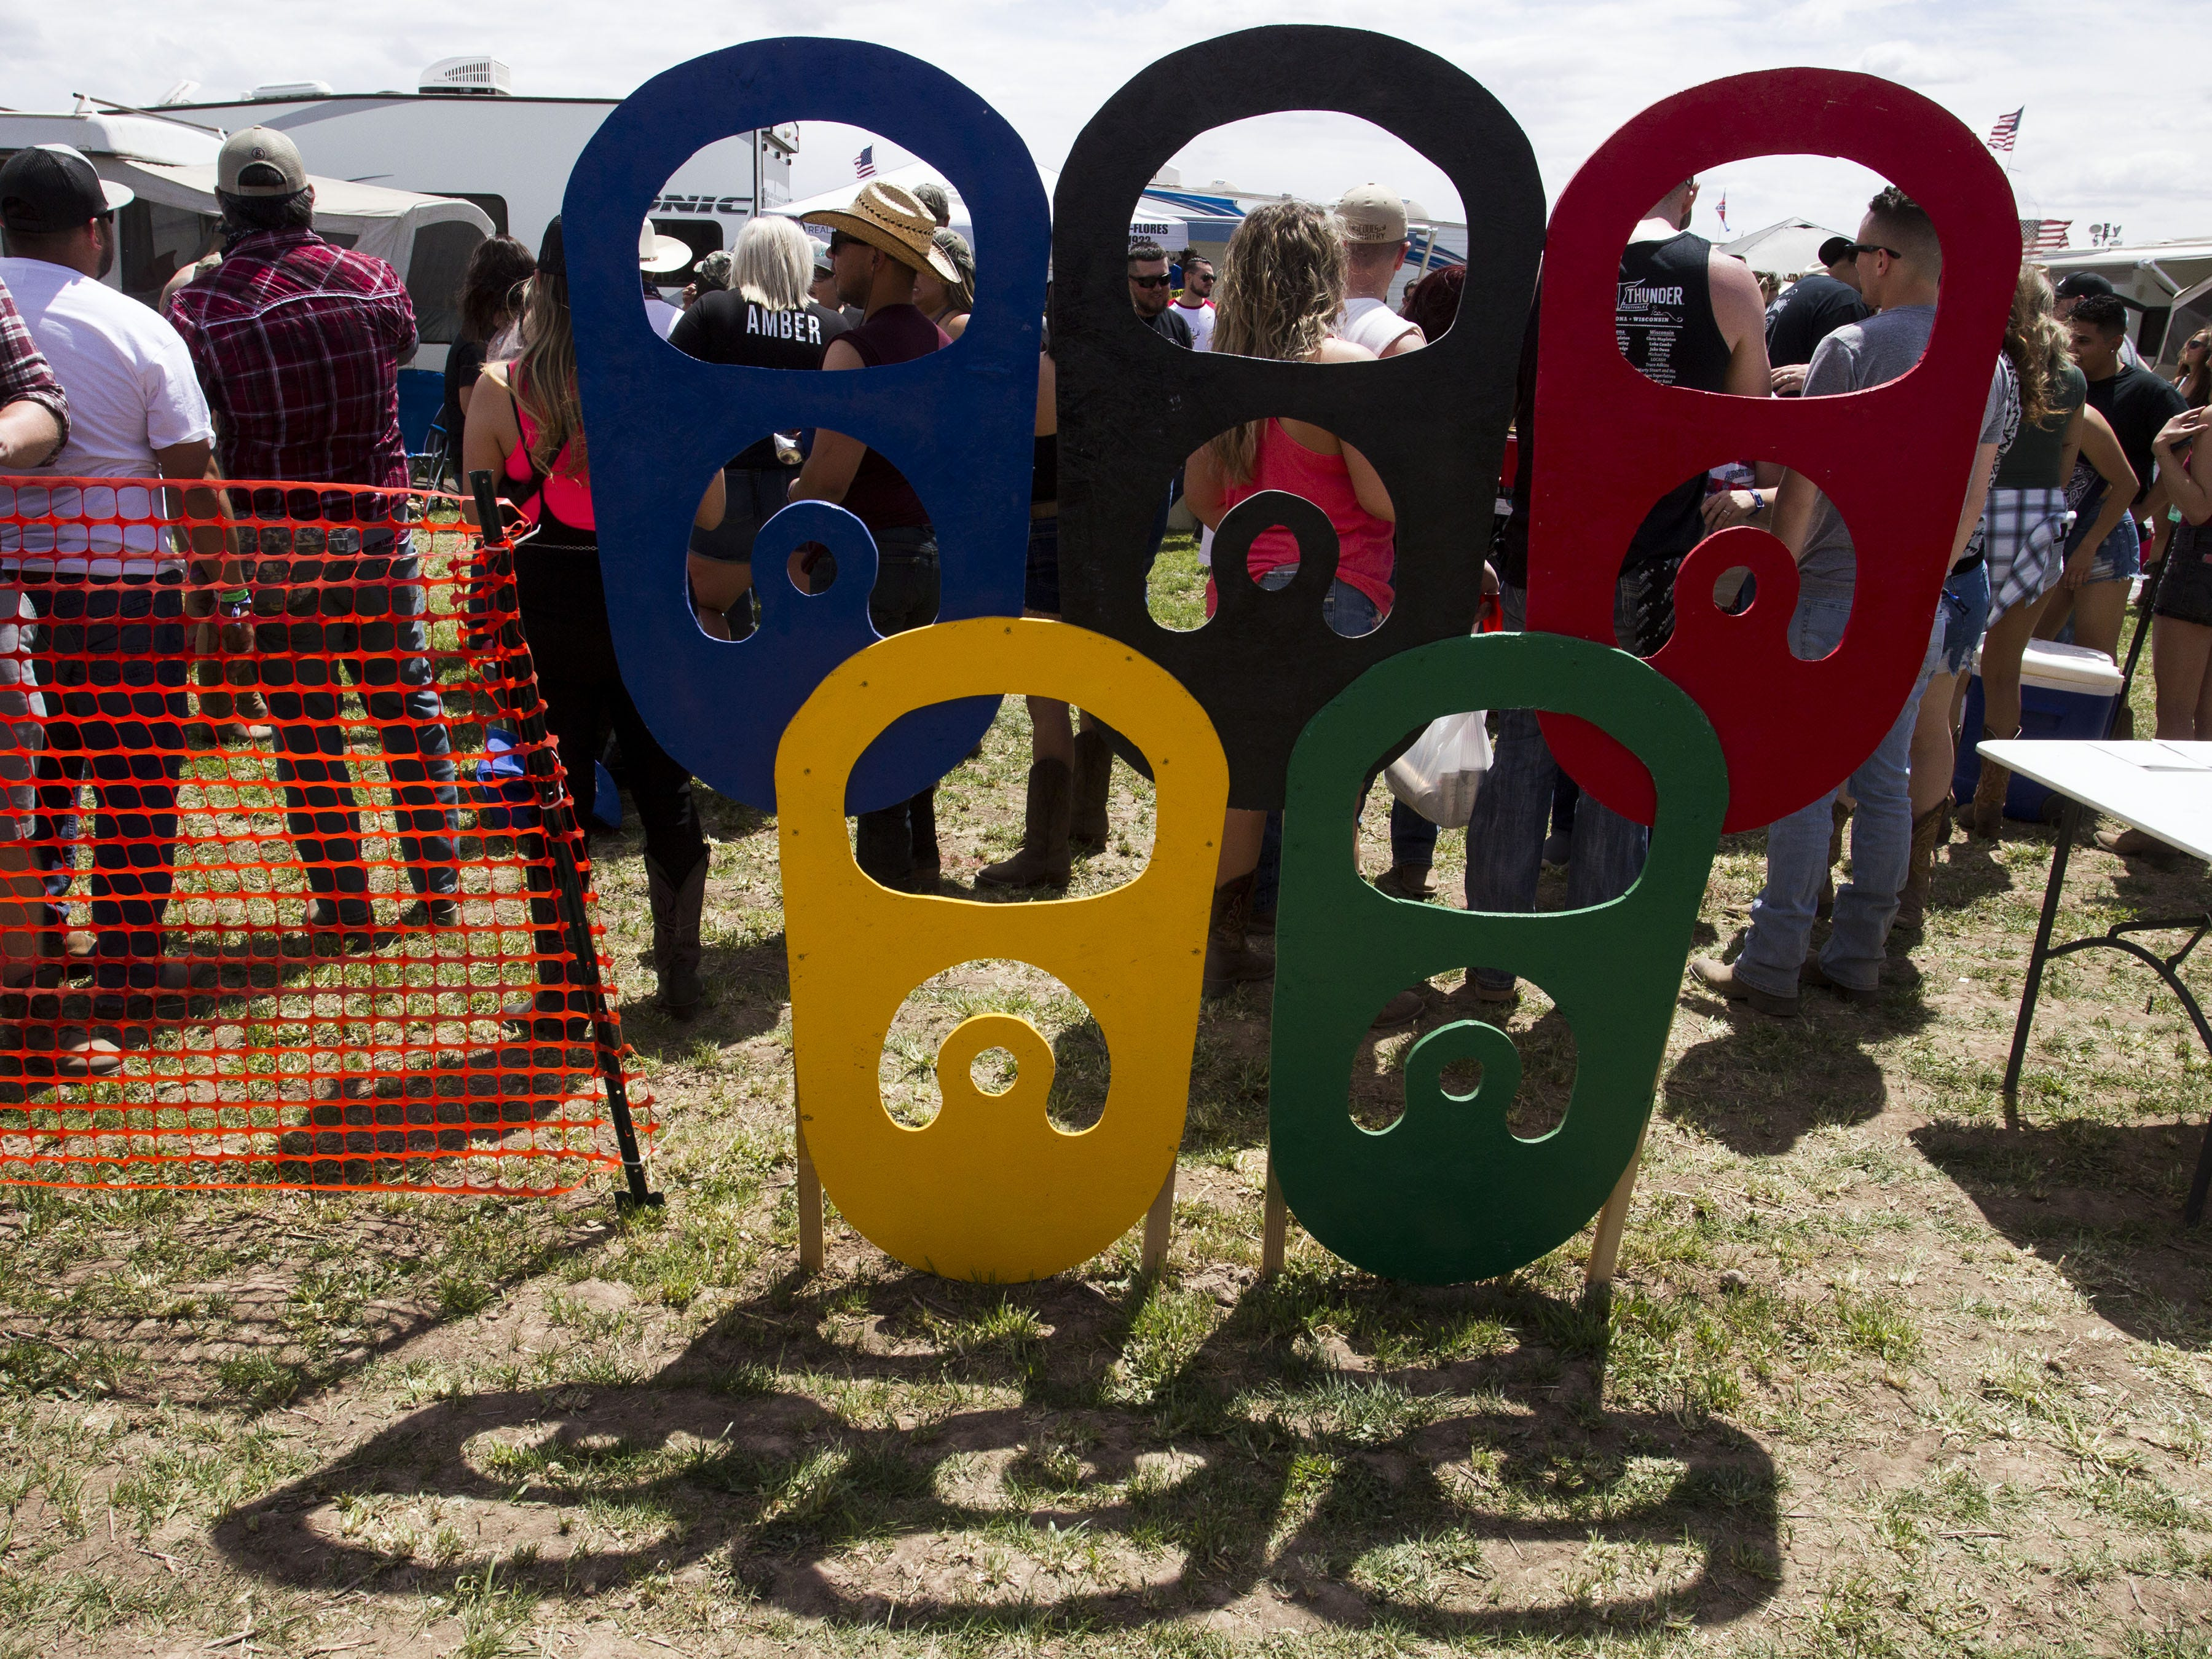 Beer Olympic symbols of beer rings sit out in front of the arena during Country Thunder Arizona Friday, April 12, 2019, in Florence, Ariz.